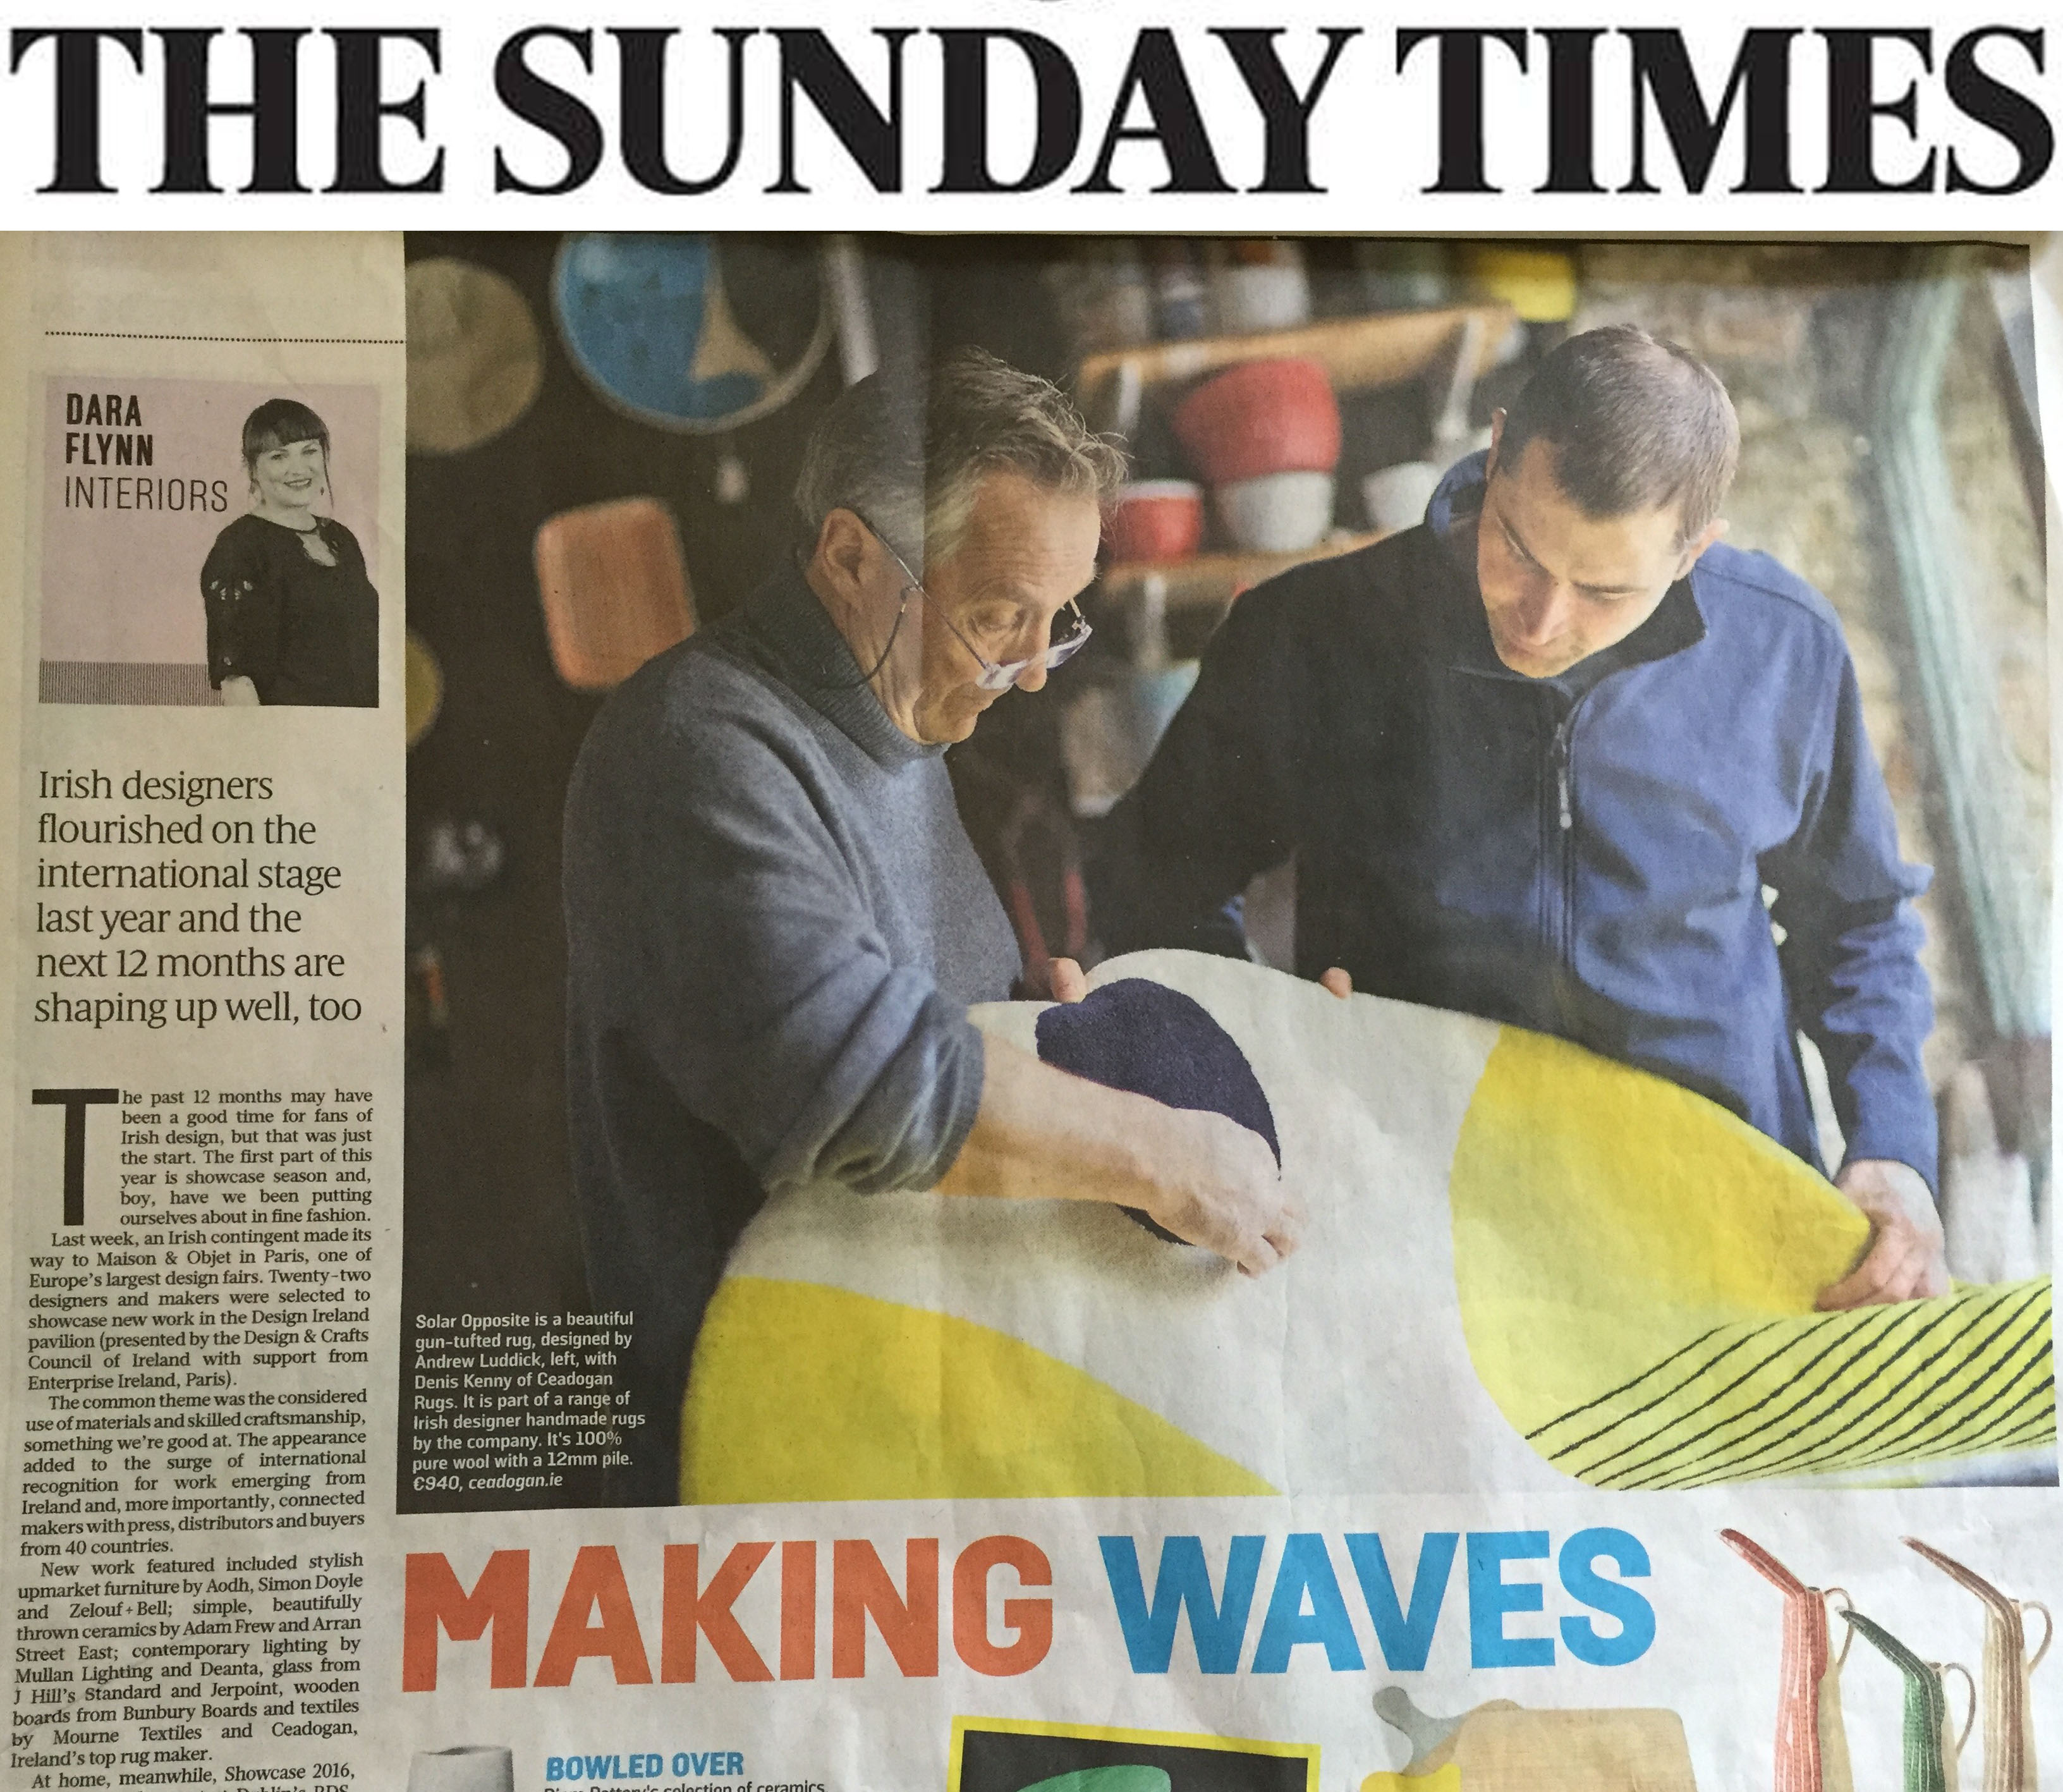 Sunday Times pic